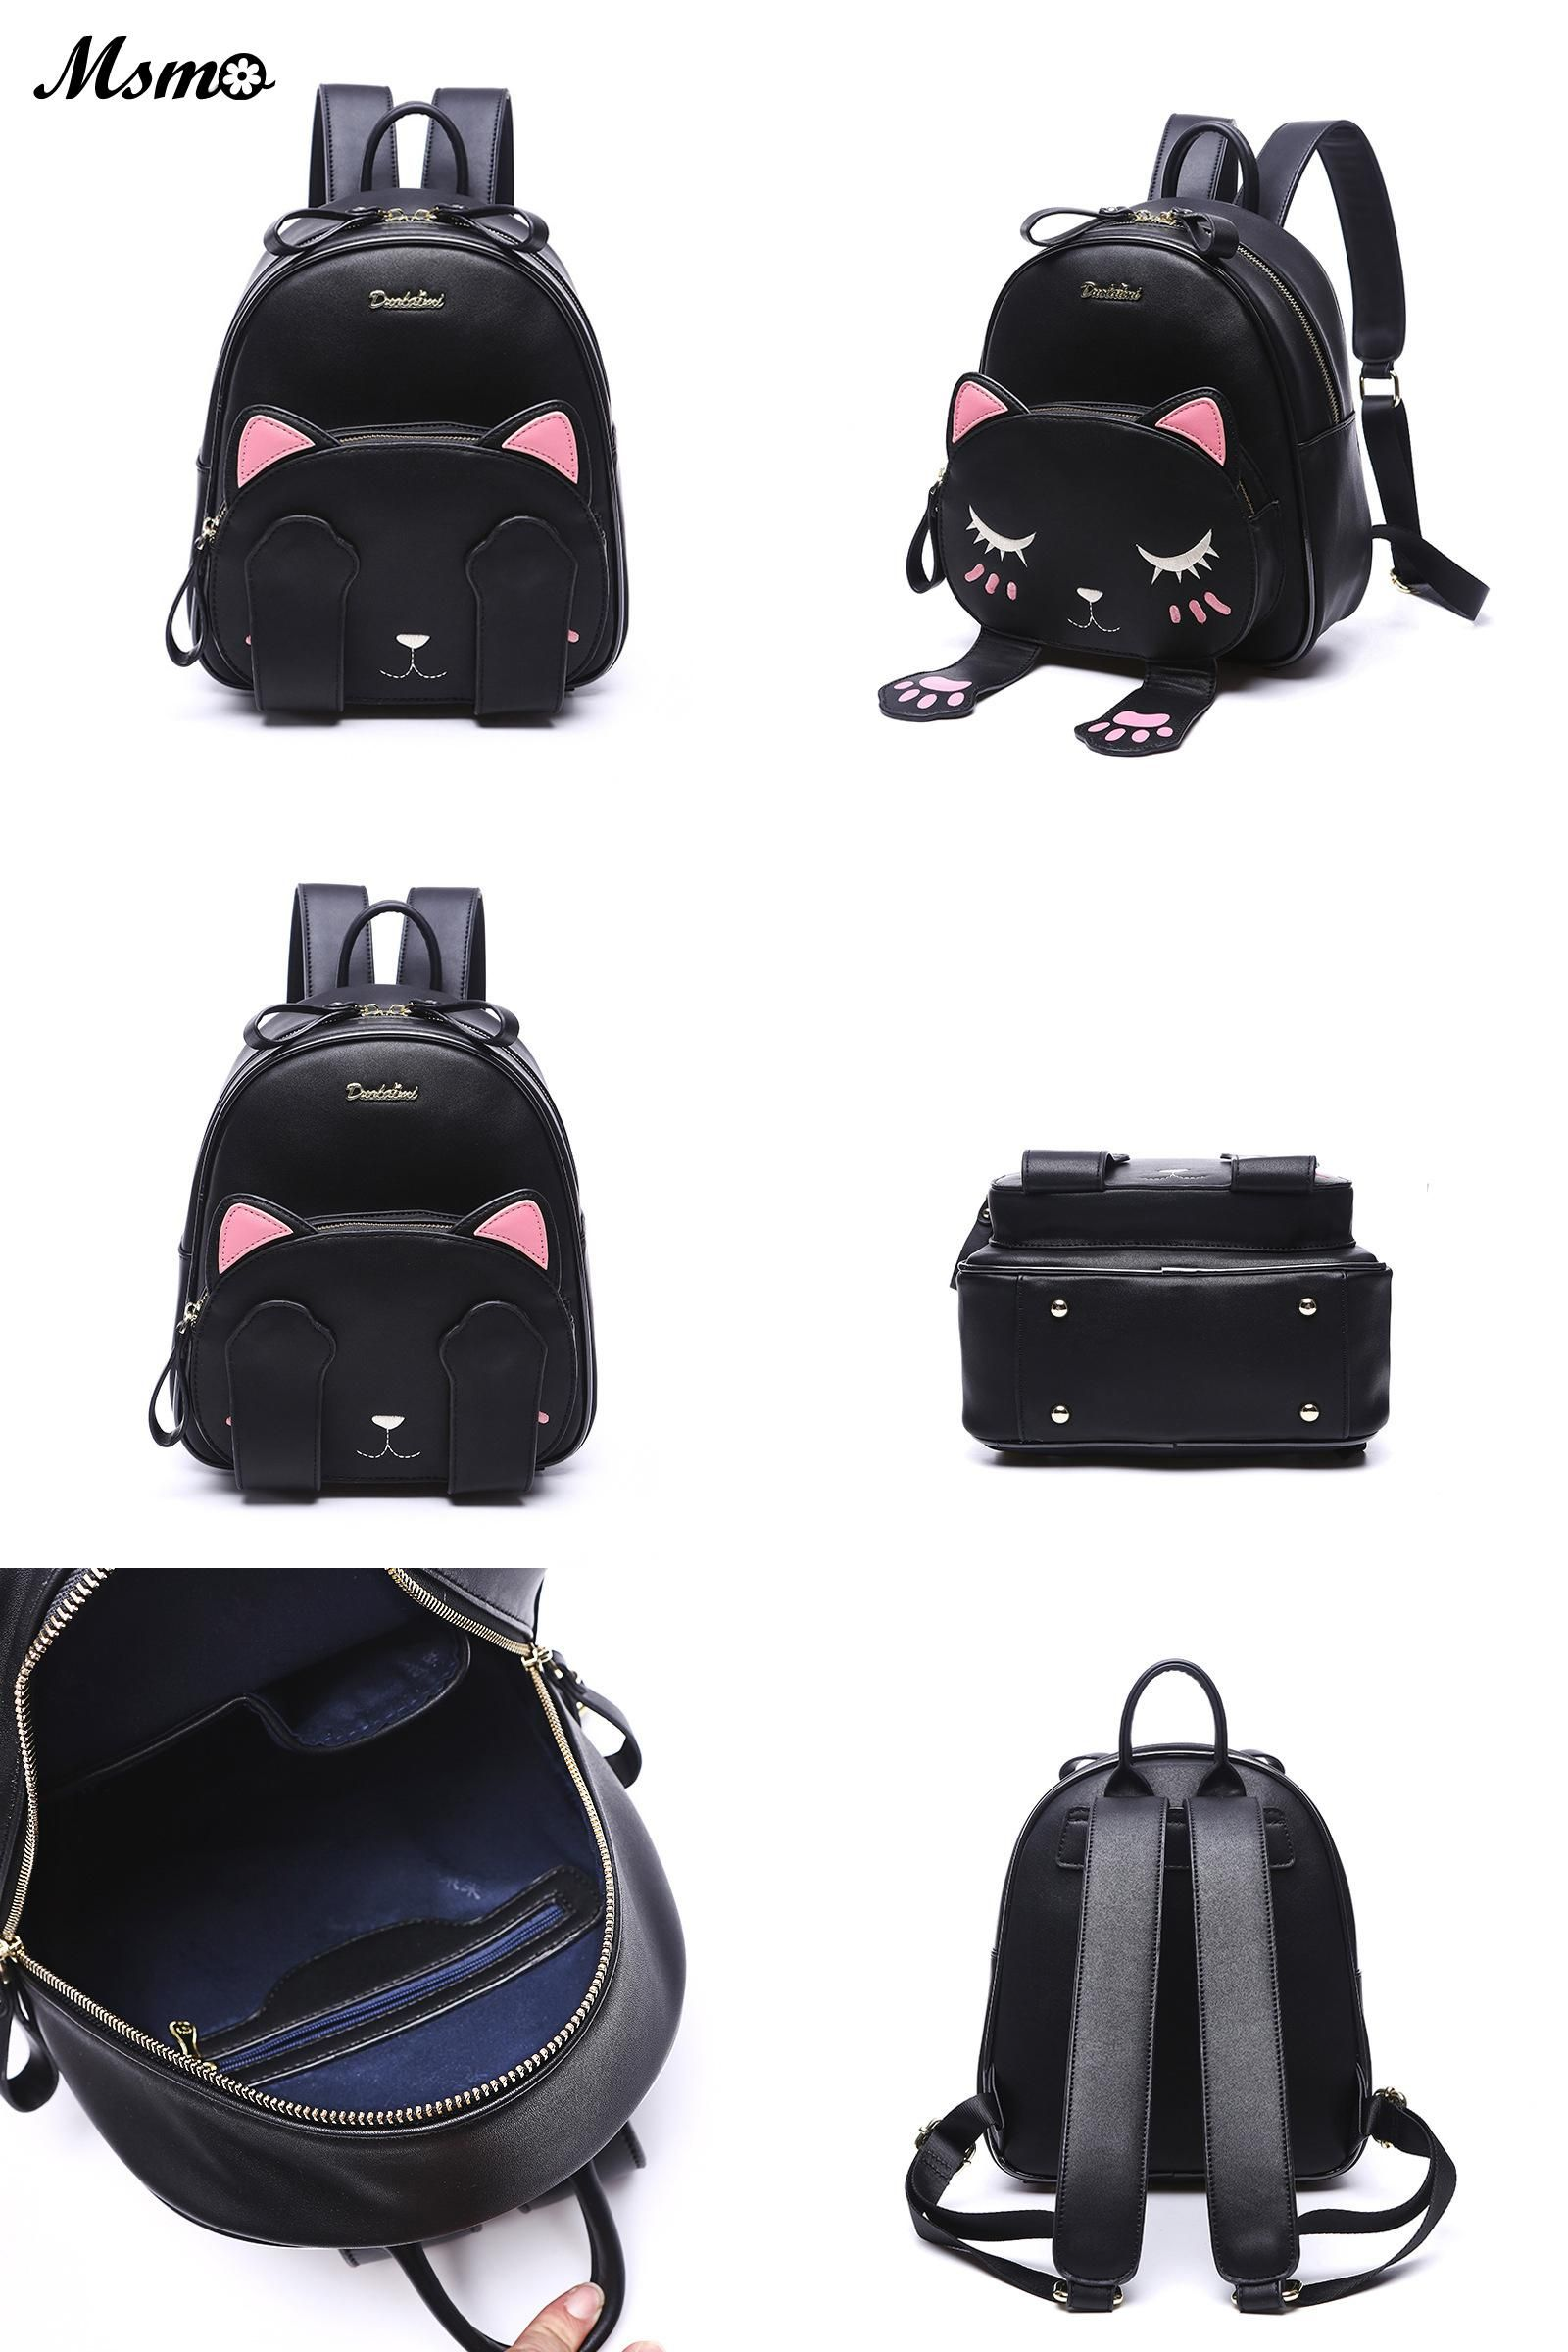 11a0e74845d [Visit to Buy] MSMO Kawaii Cat Ear Backpack Black Preppy Style School  Backpacks For